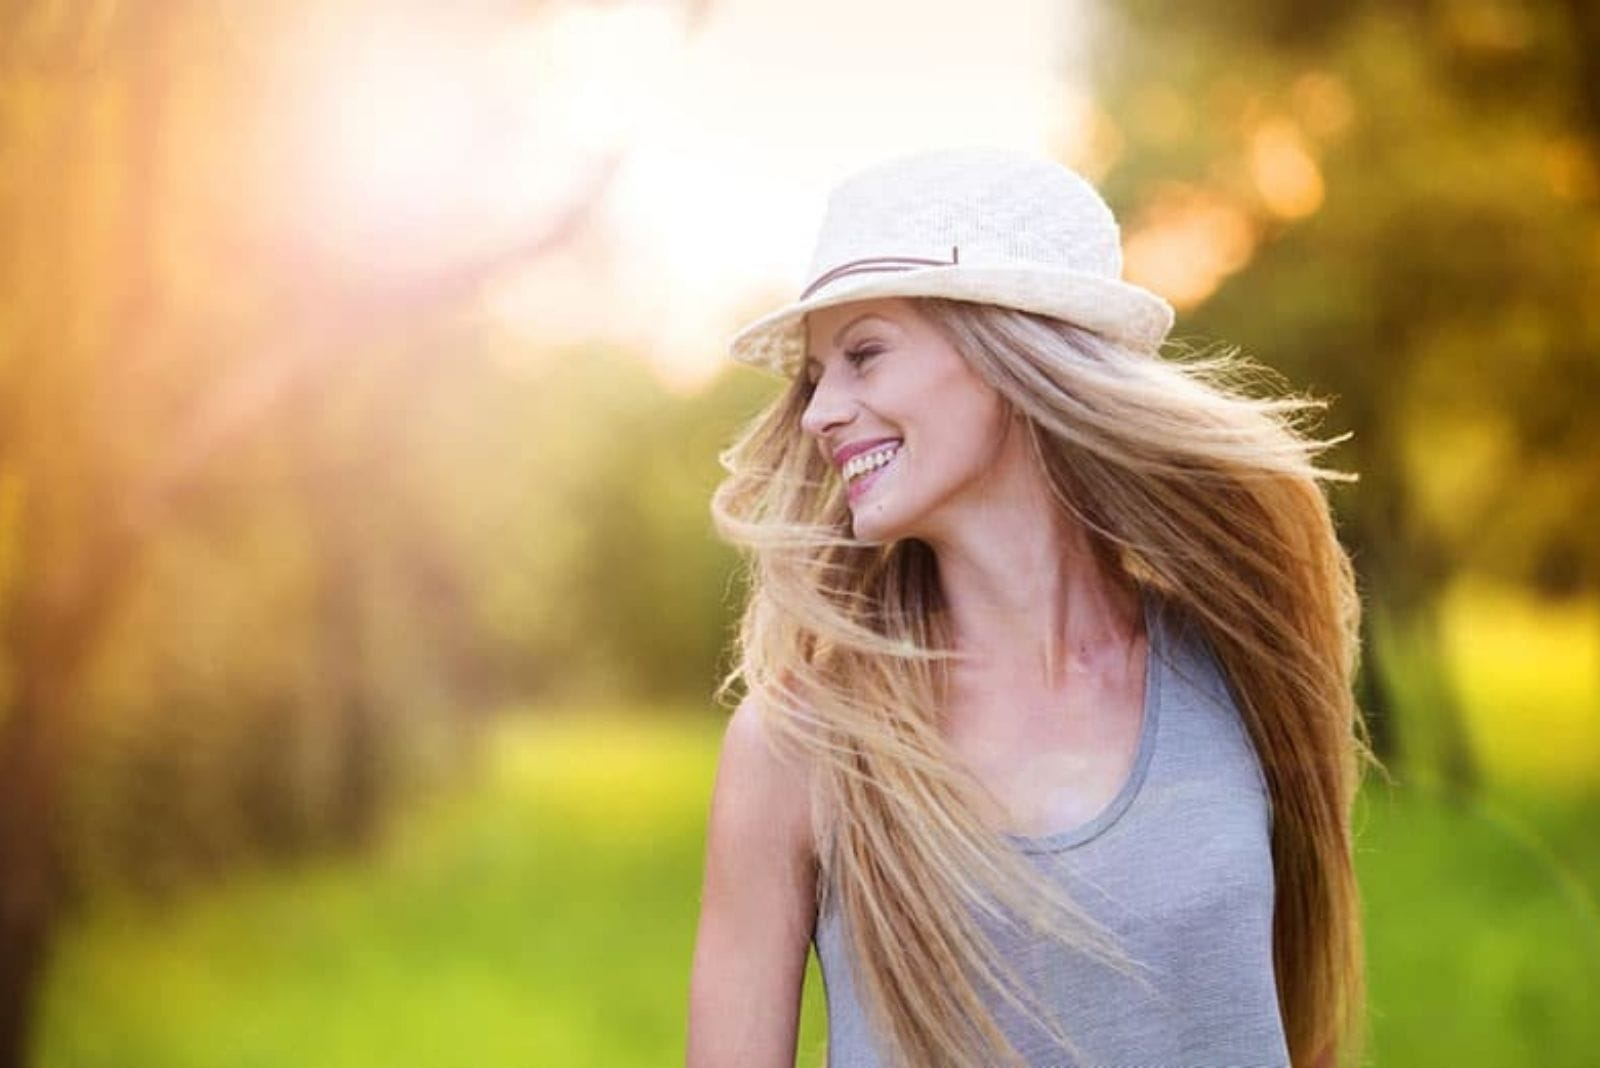 a woman with long blonde hair with a hat laughs